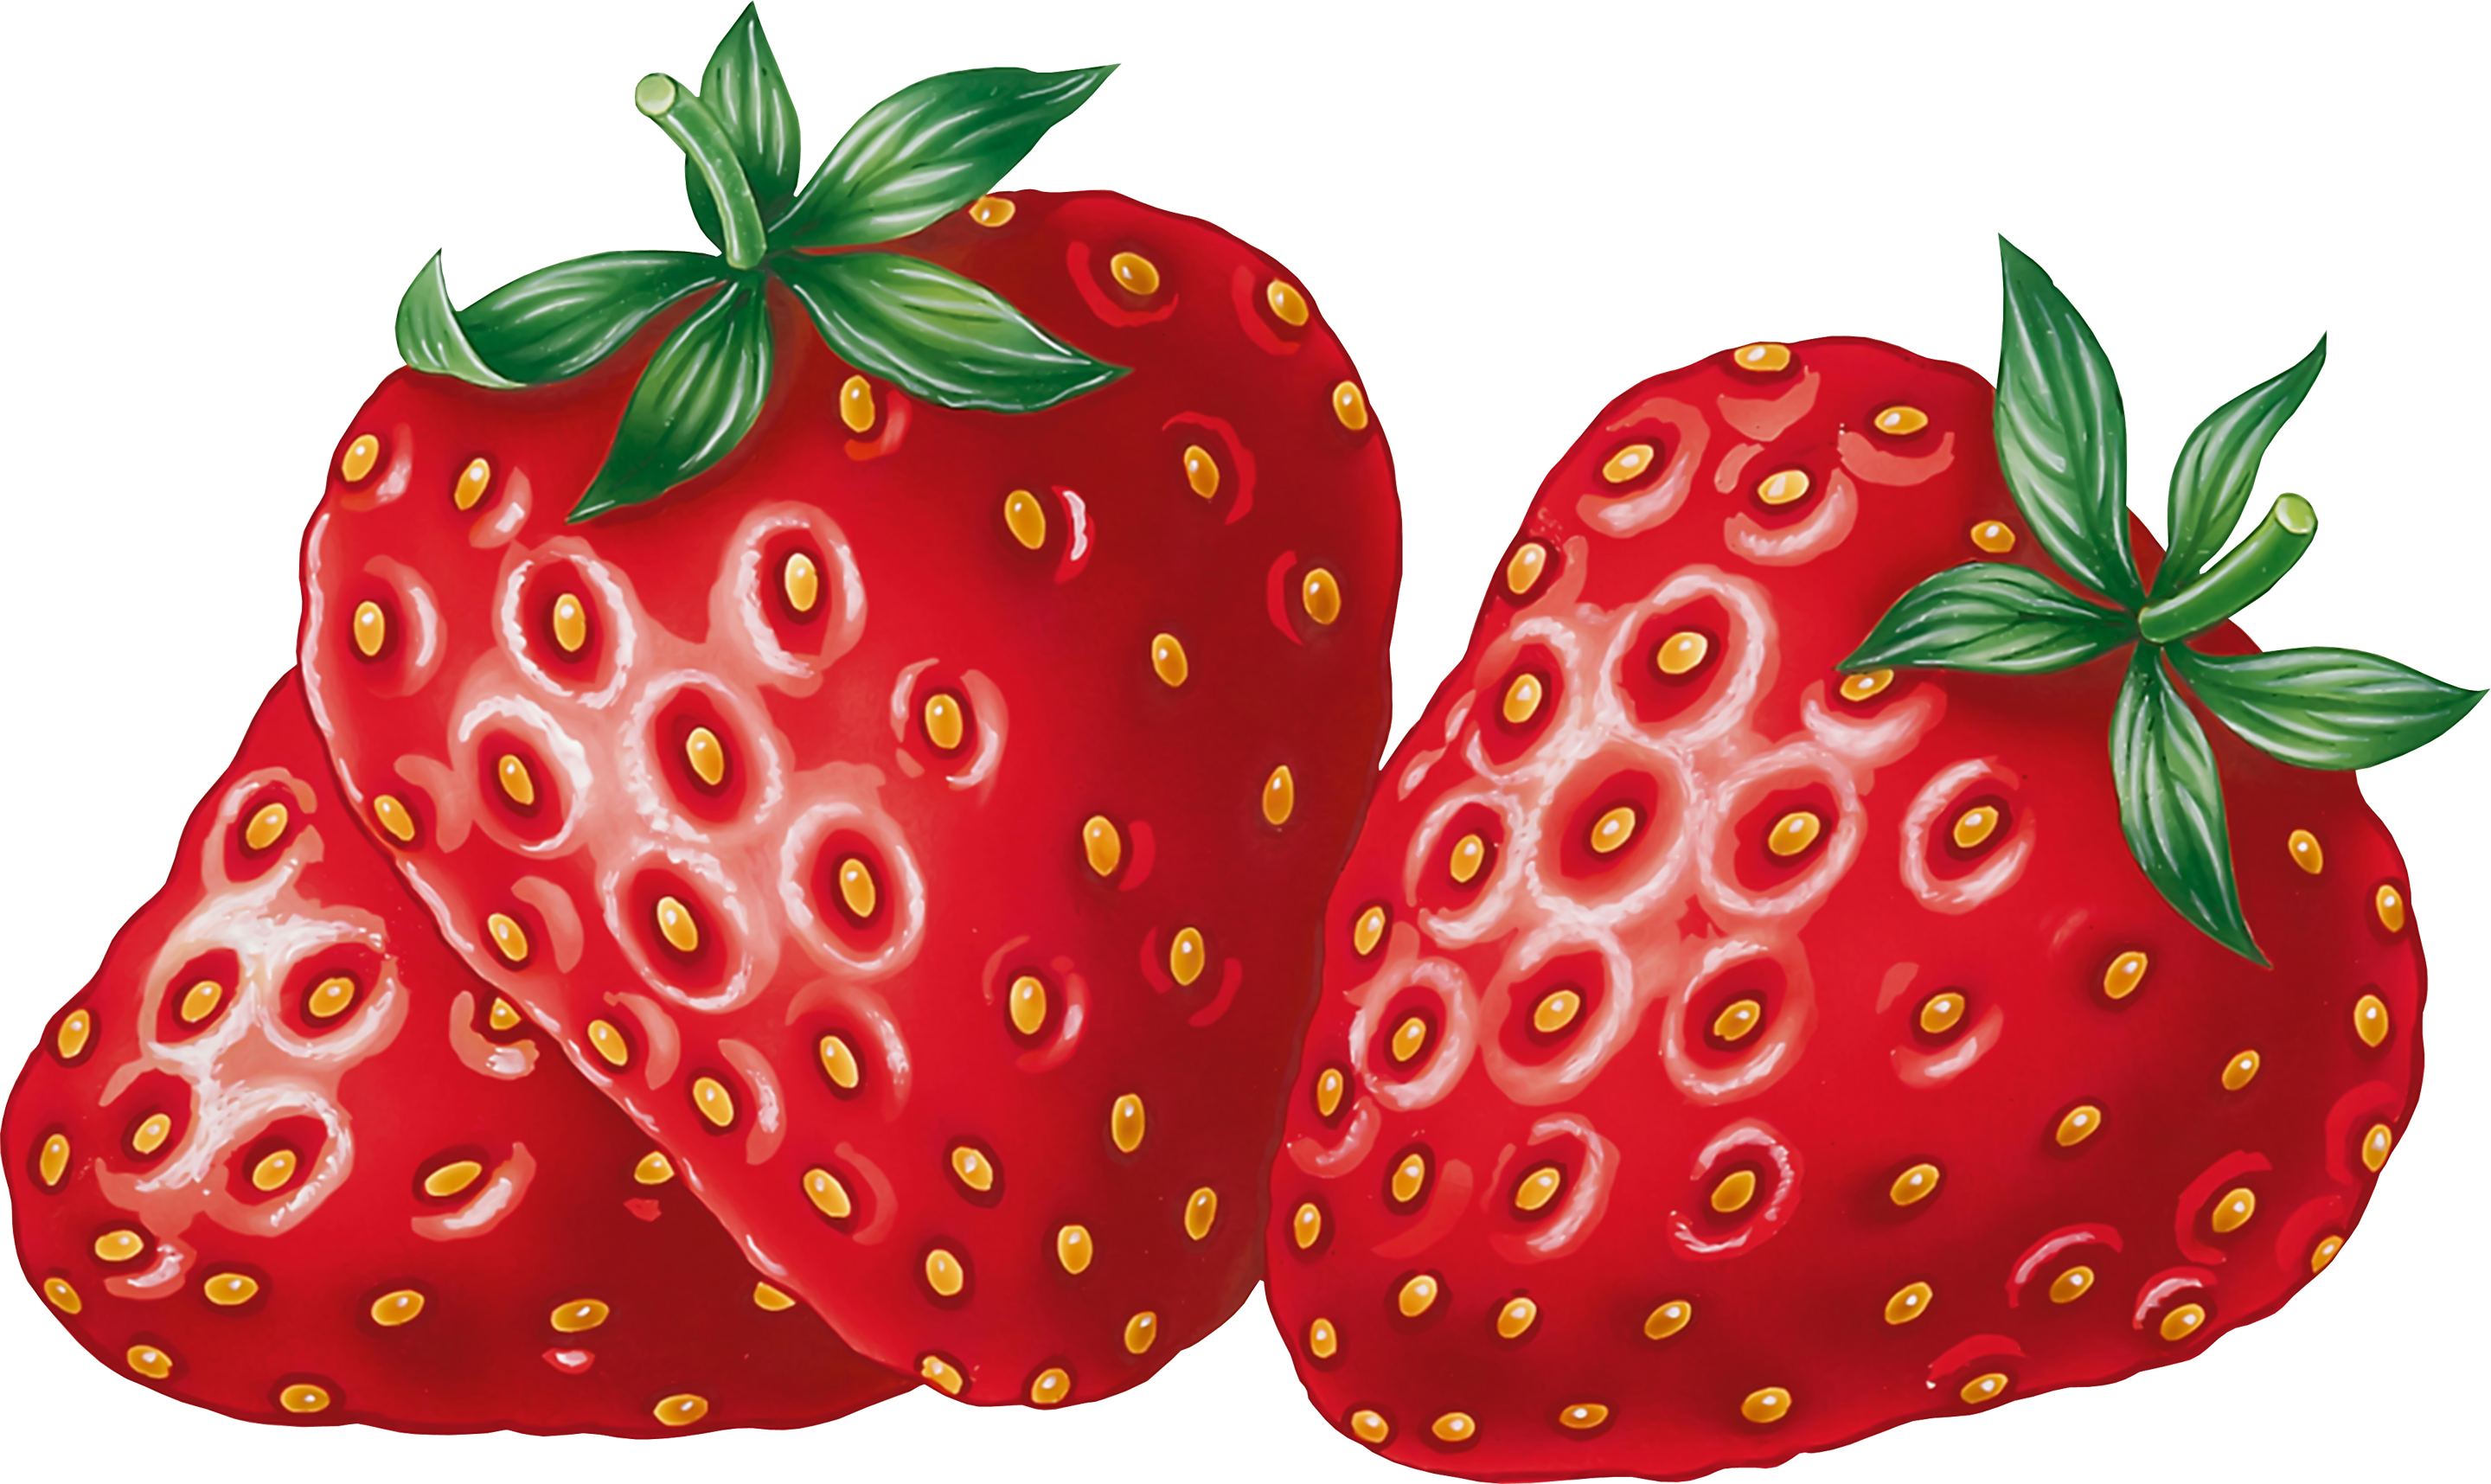 Strawberry PNG - 5177